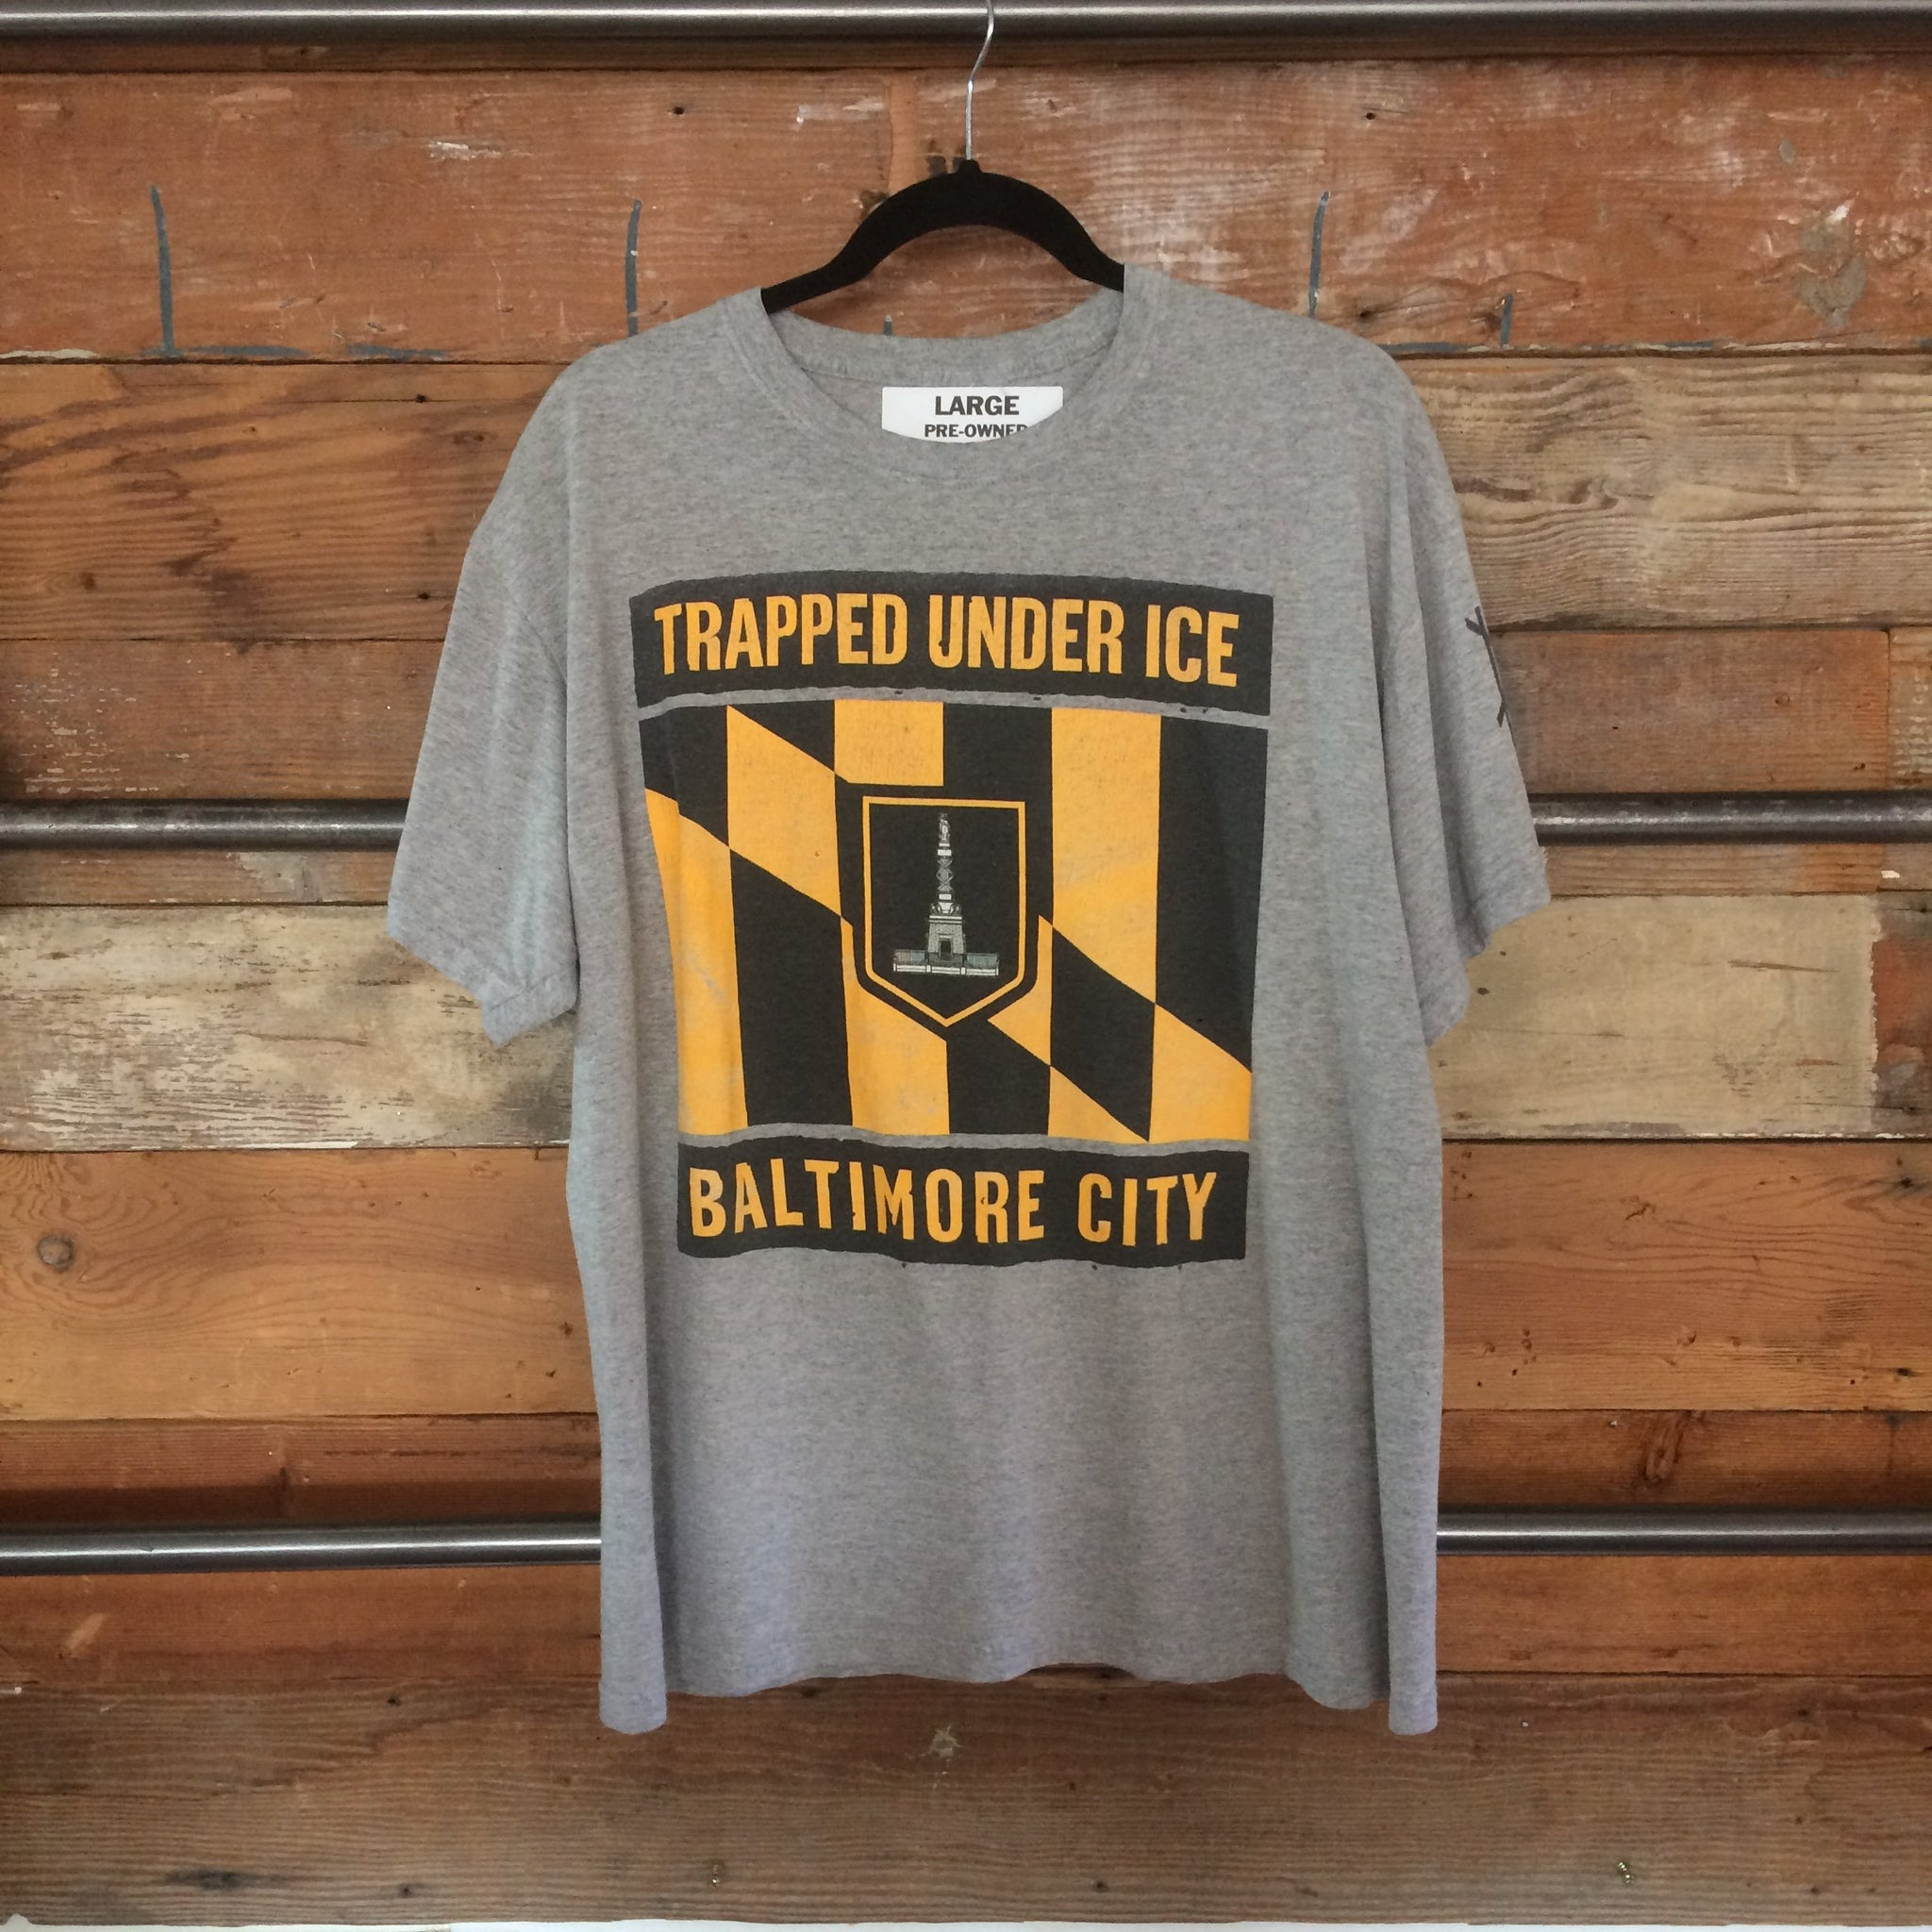 TRAPPED UNDER ICE - Baltimore City T-shirt (L)